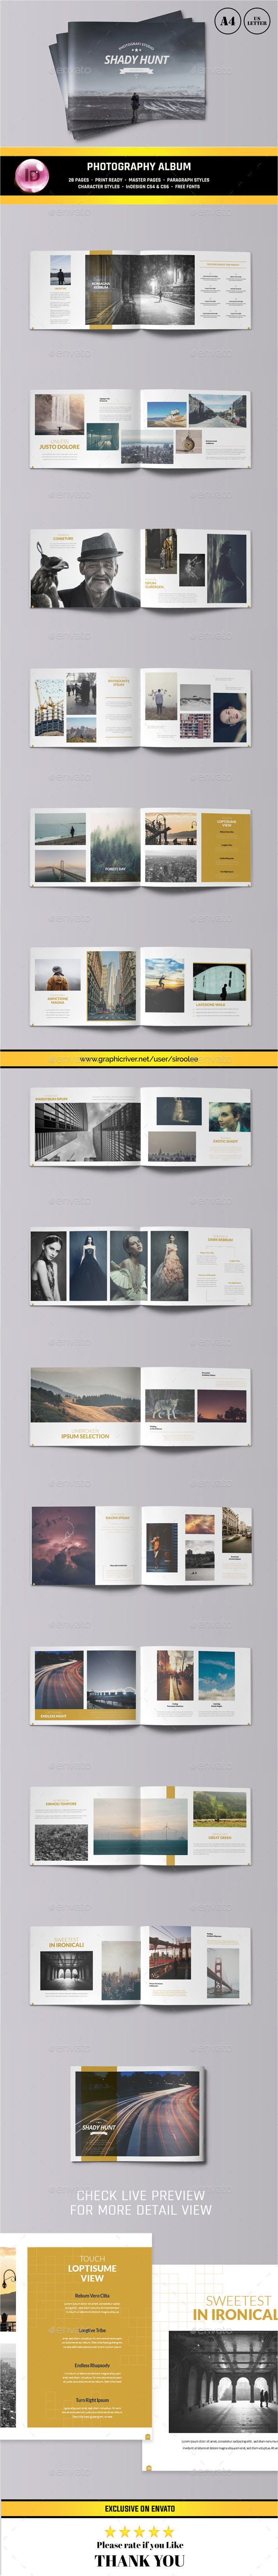 Photography Portfolio Album Template #design Download: http://graphicriver.net/item/photography-portfolio-album/12034297?ref=ksioks